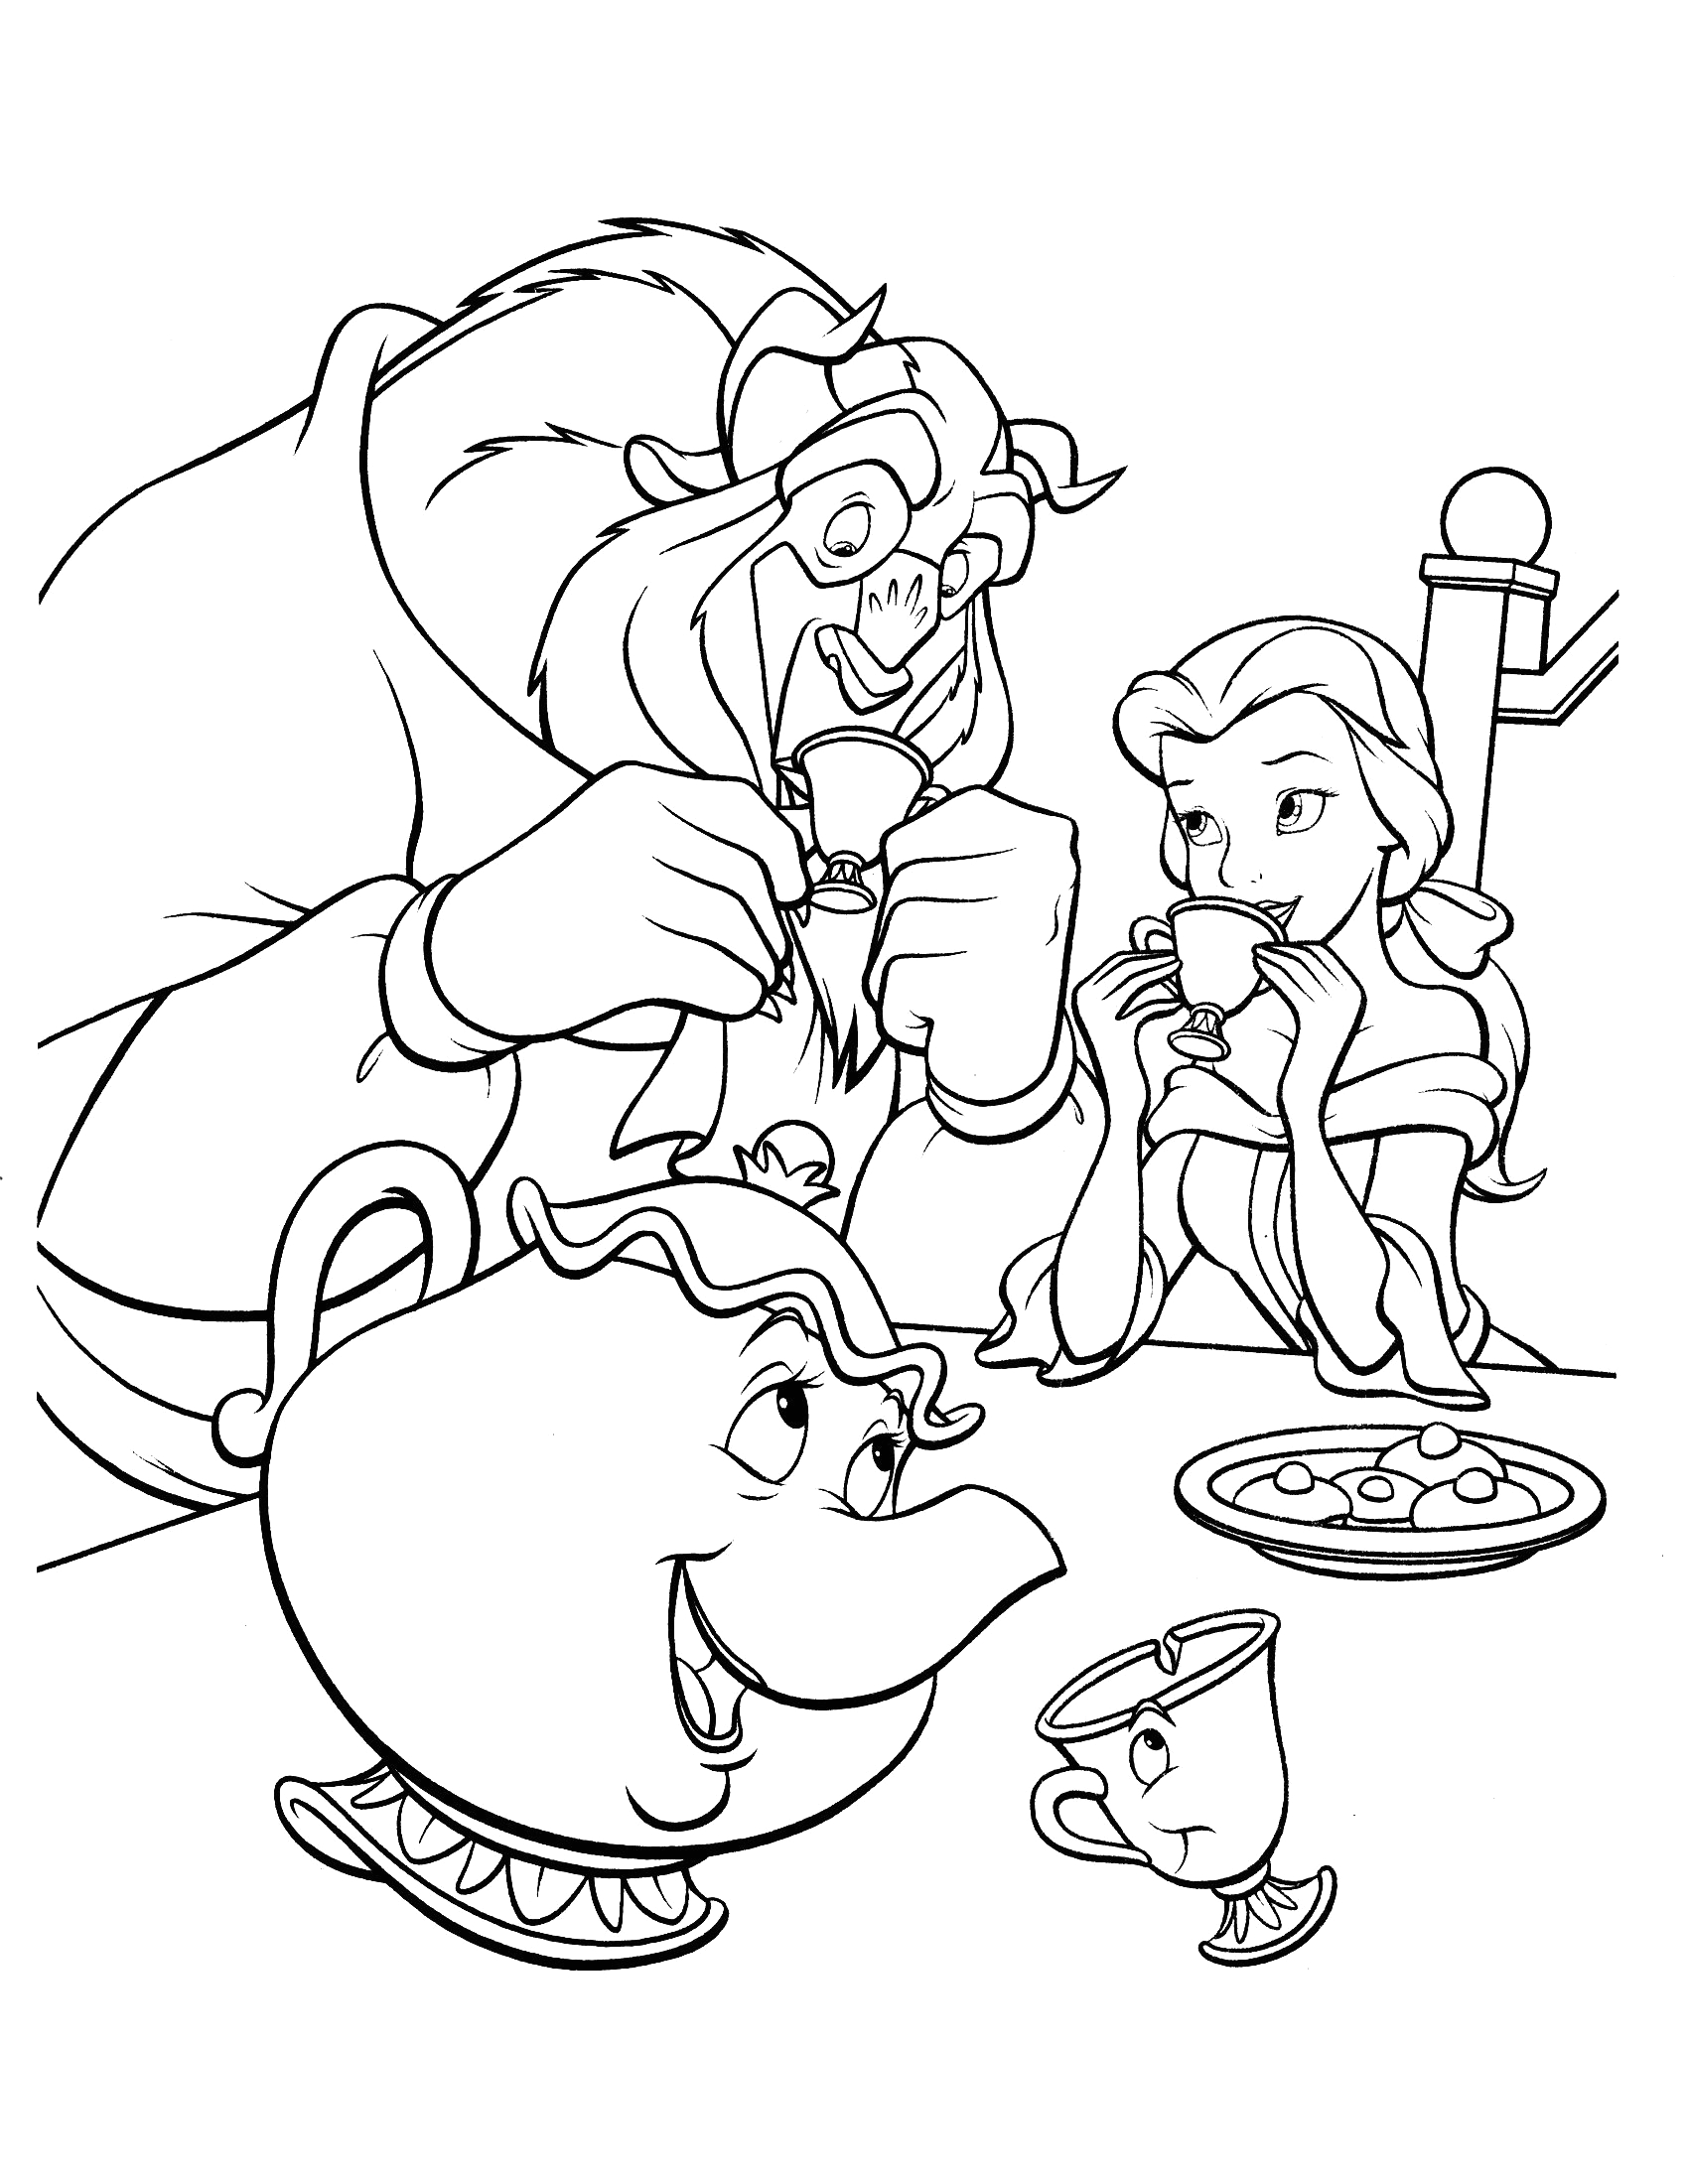 Beauty and the Beast Coloring Pages Online Beauty and the Beast Coloring Page